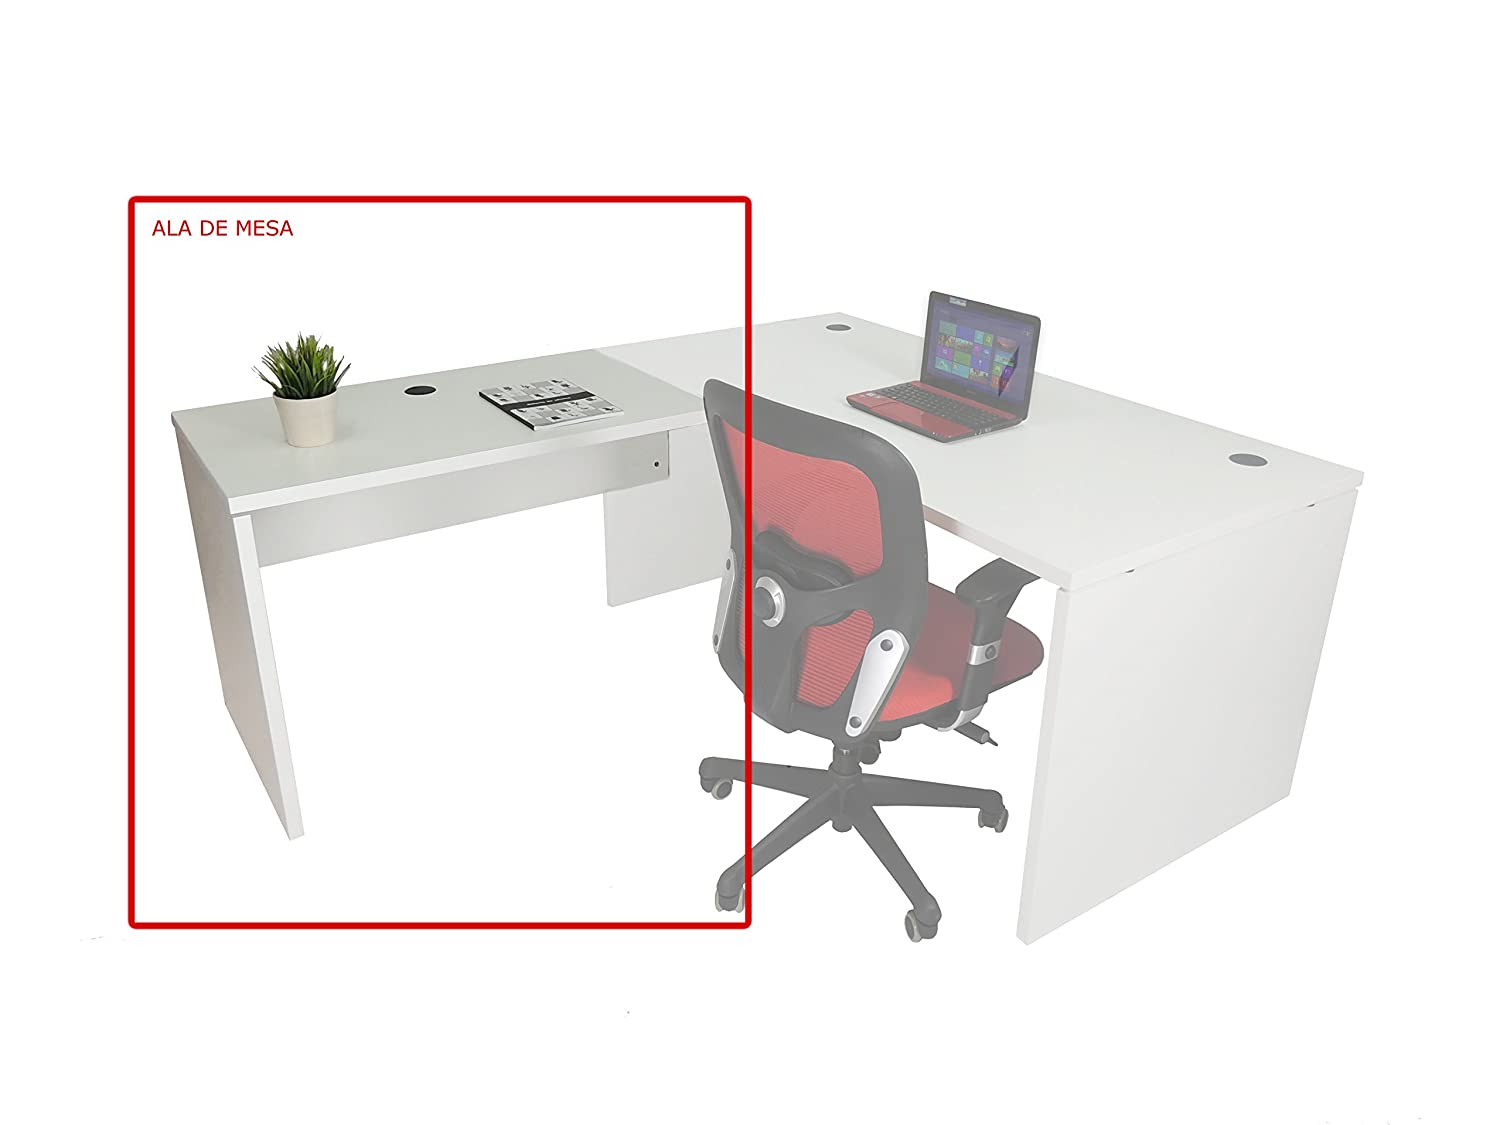 ala para Mesa Euro 2000. Color Blanco. 80x60 cm: Amazon.es: Hogar